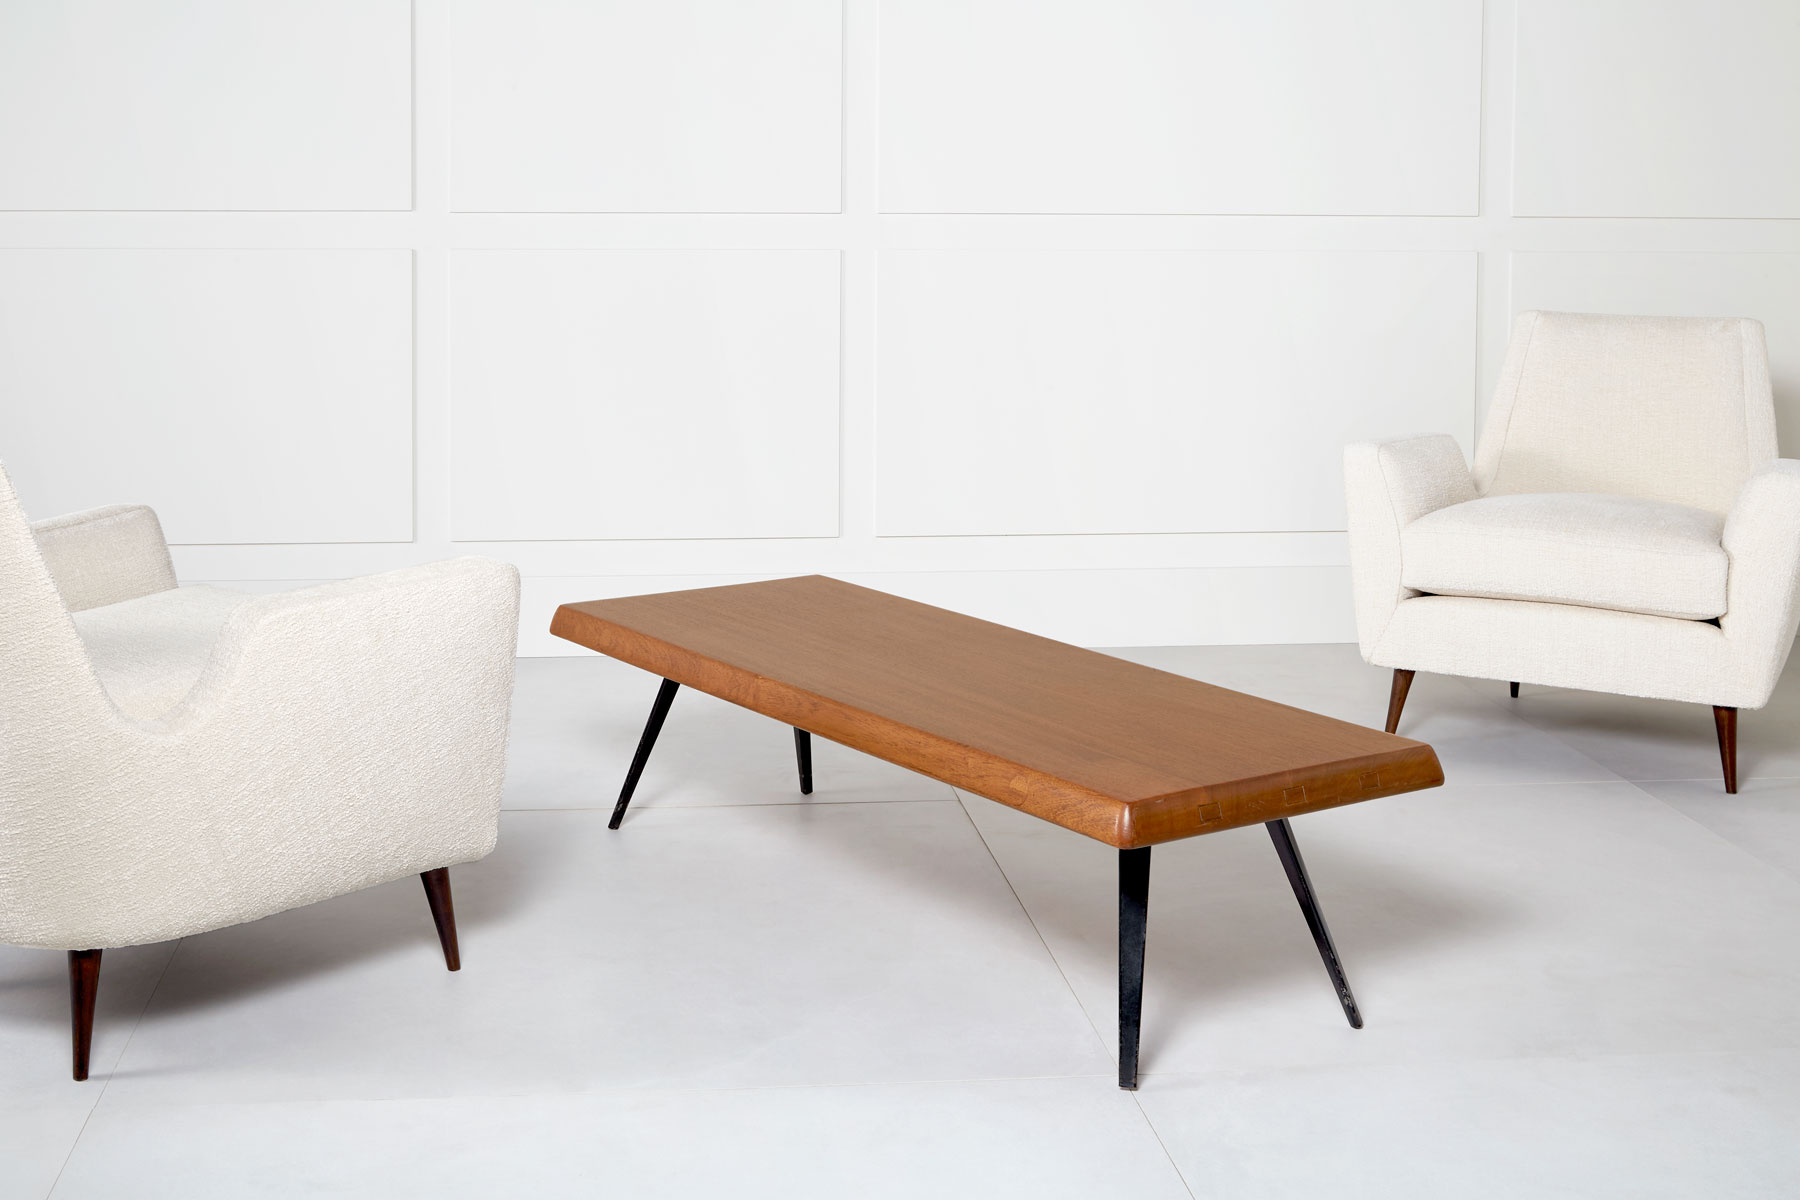 Charlotte Perriand, Table basse, vue 02